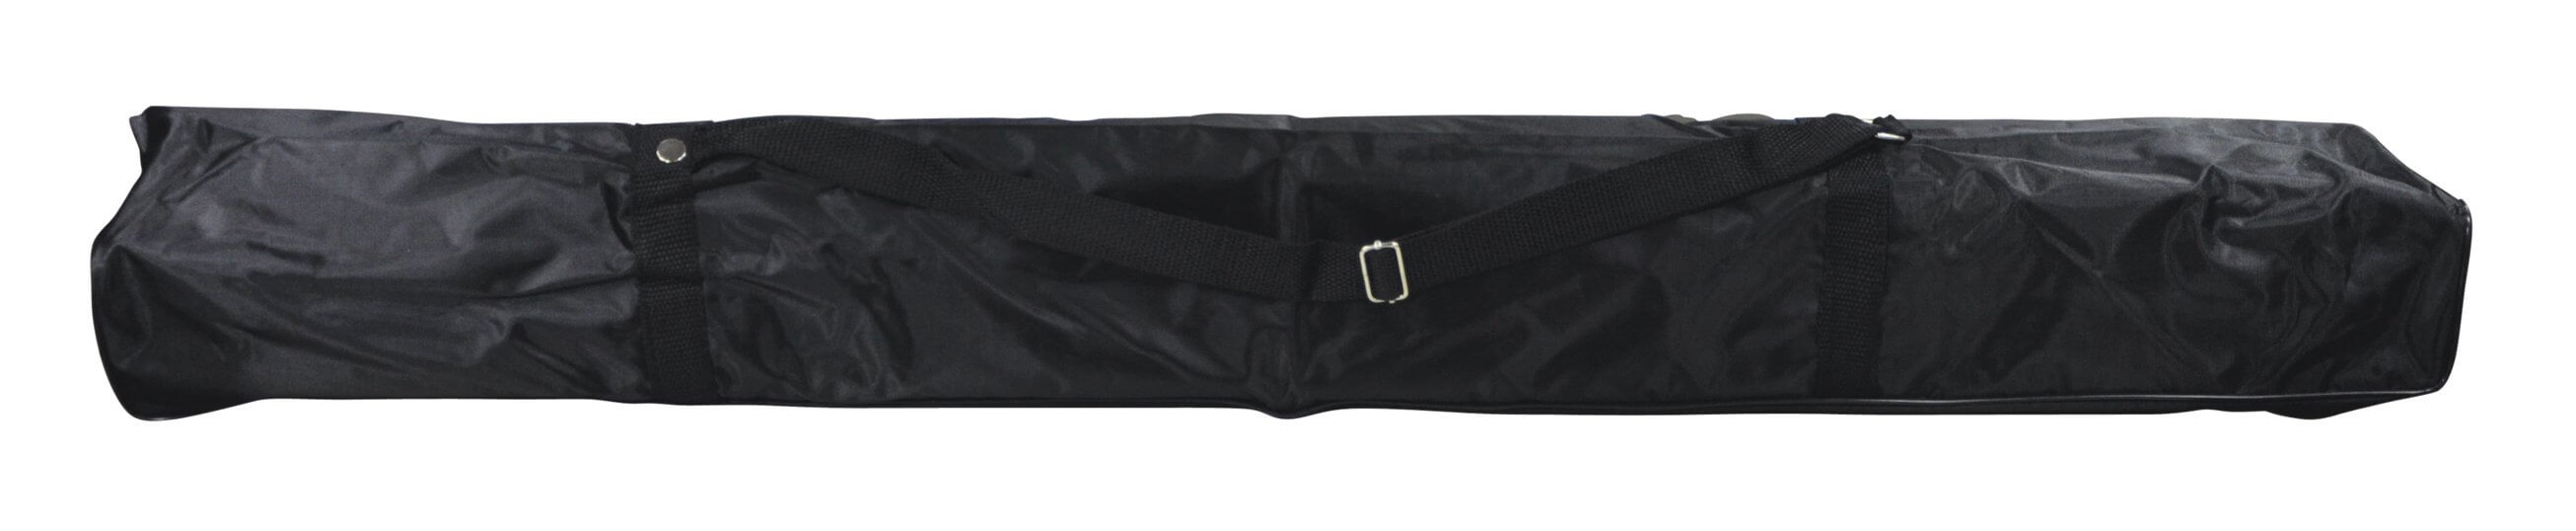 Soundlab Carry Bag Case for Microphone Stand